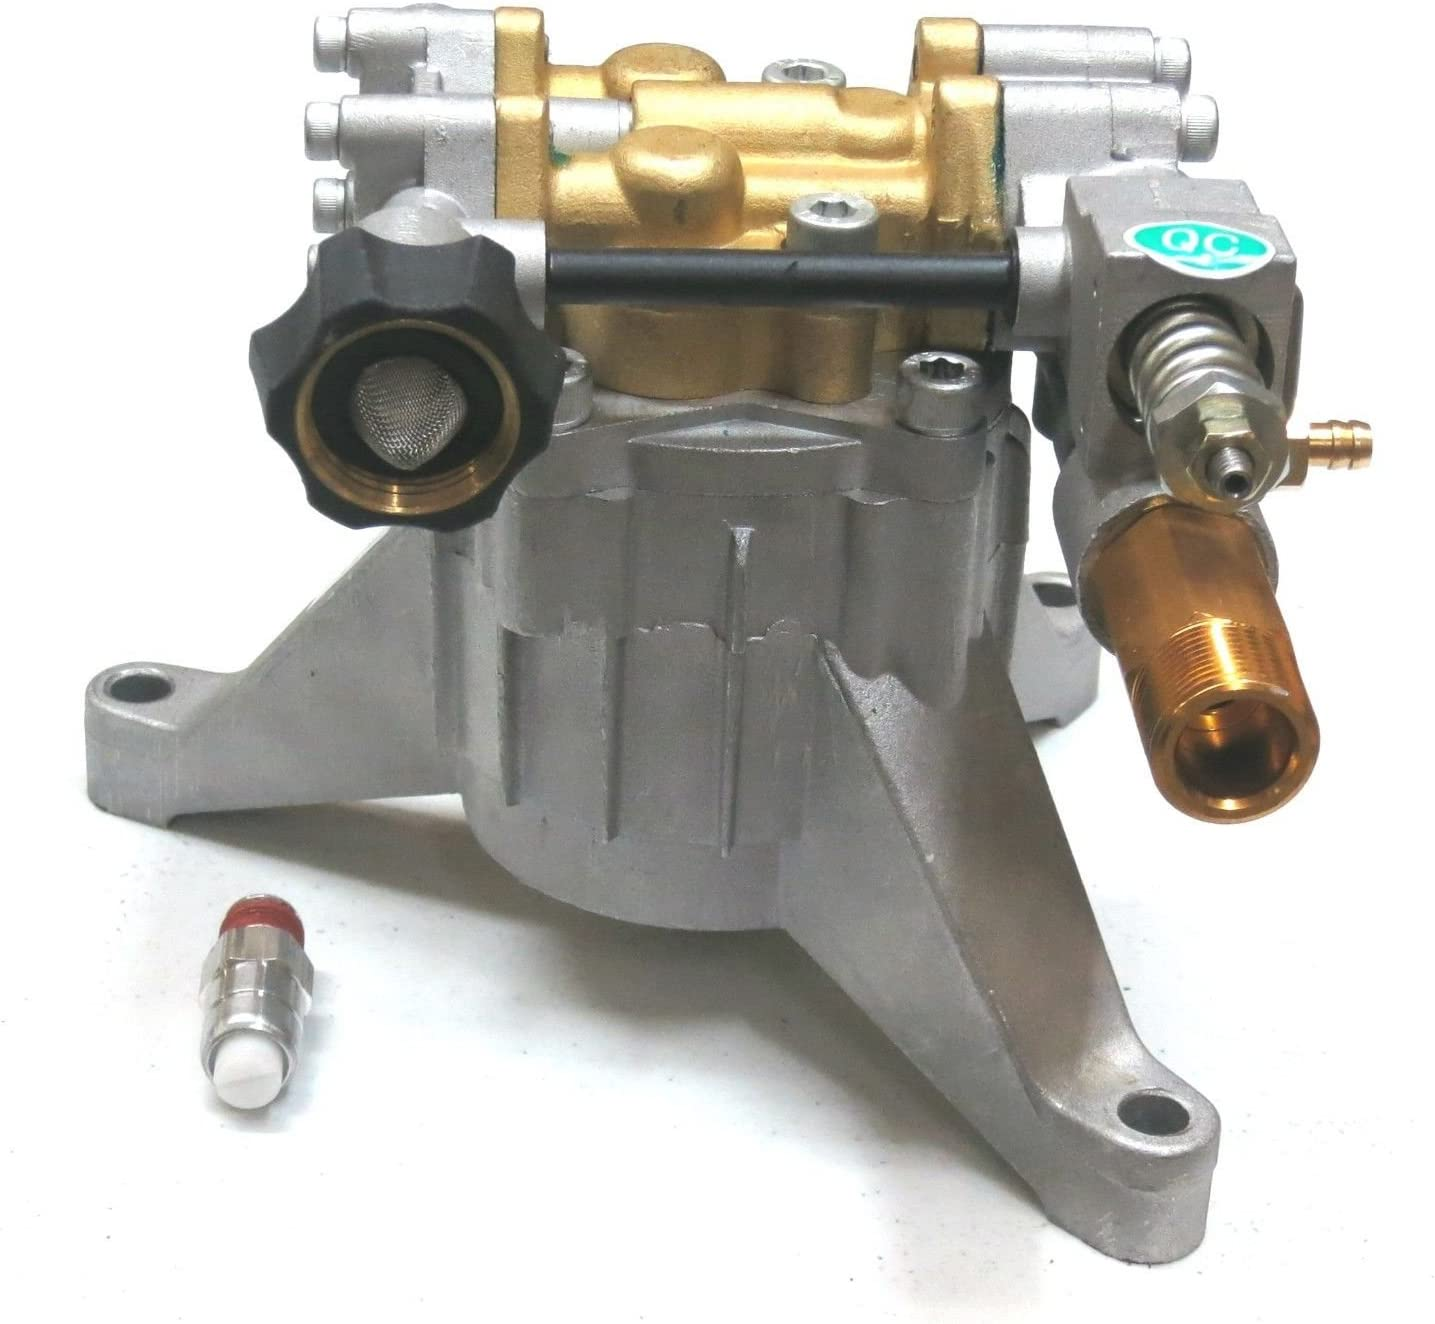 3100 PSI Upgraded POWER PRESSURE WASHER WATER PUMP Campbell Hausfeld PW2200V4LE by The ROP Shop